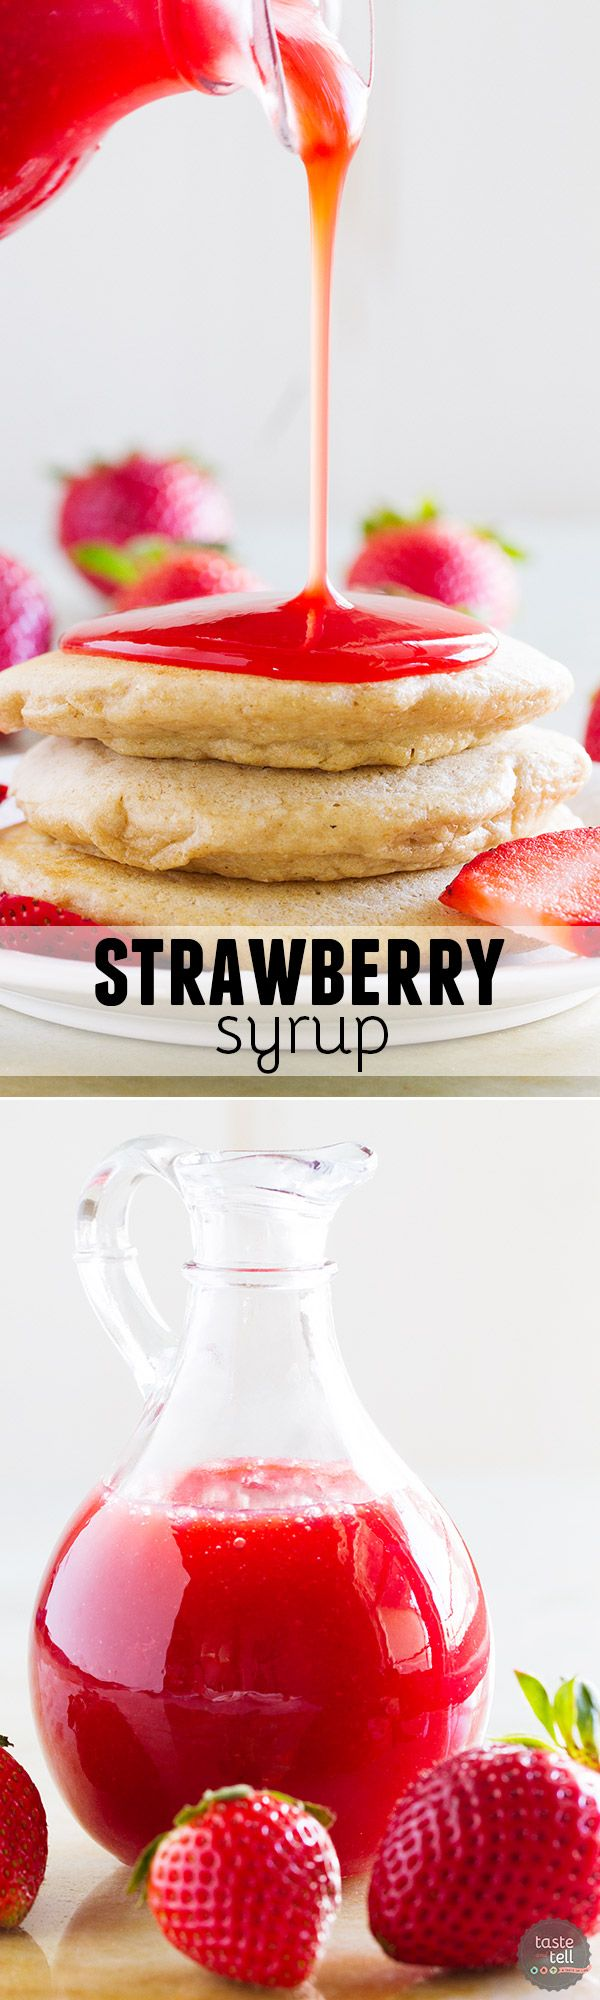 Perfect for pancakes, ice cream or as a drink mix-in, this Strawberry Syrup Recipe tastes sweet and fresh and is perfect all summer long.